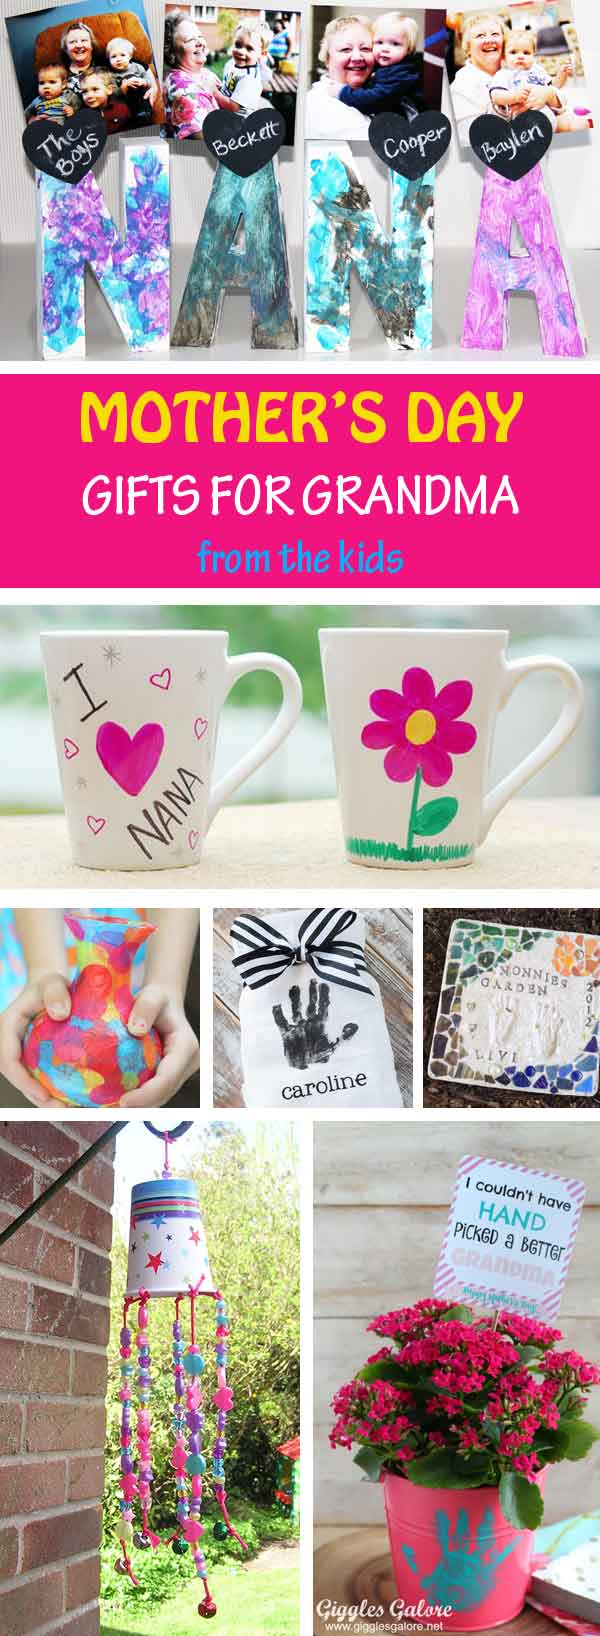 Mother's Day gifts for grandma from kids